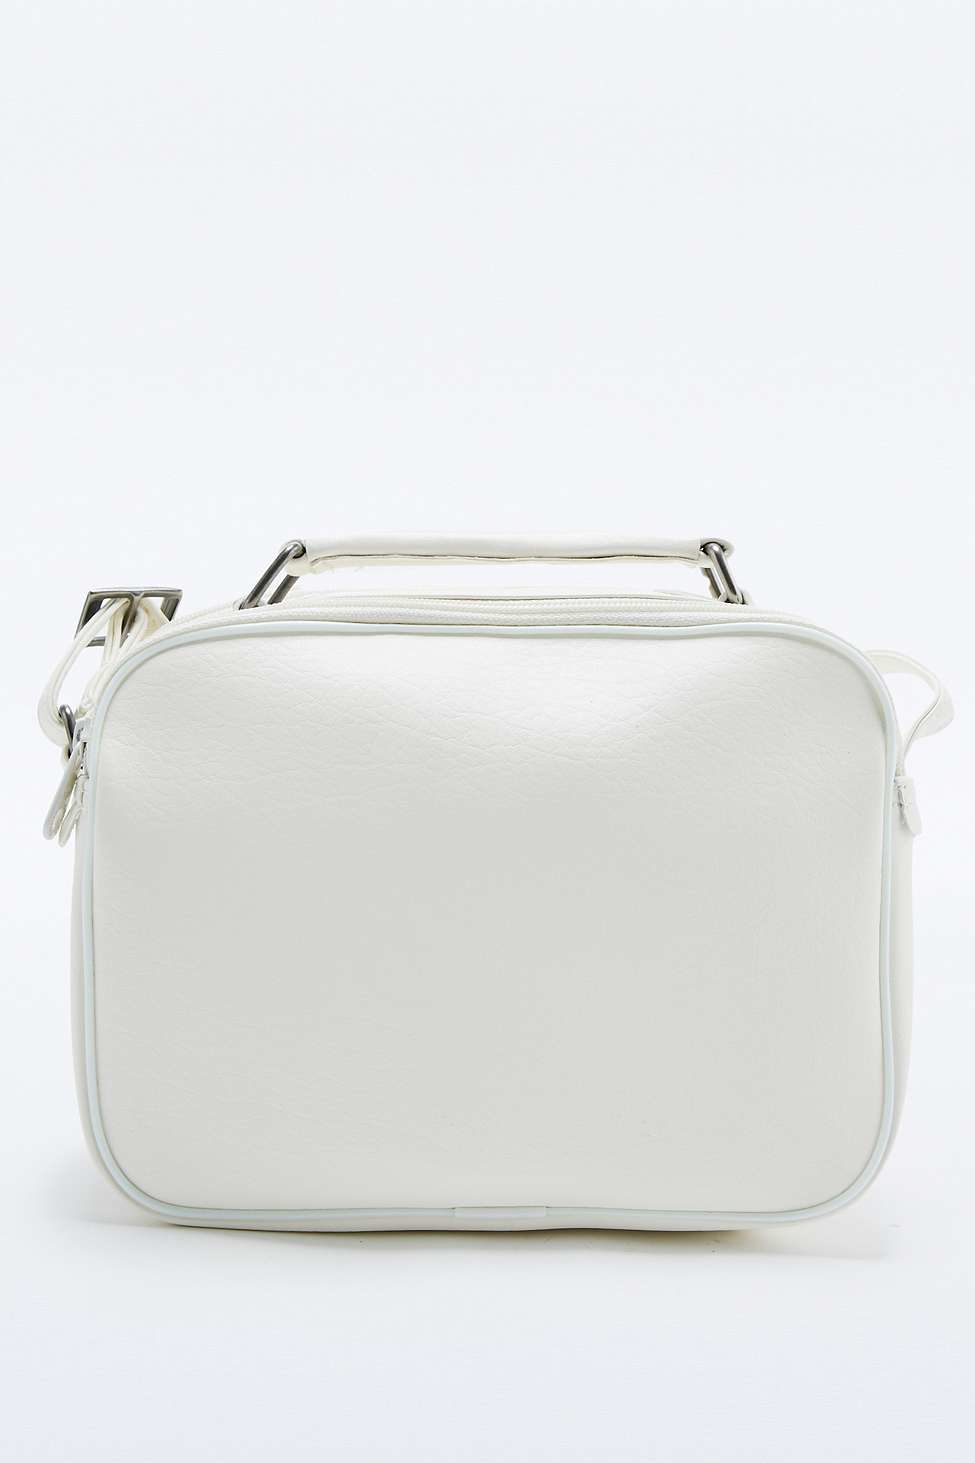 b64e32116041 adidas Originals Mini White Airliner Bag in White - Lyst